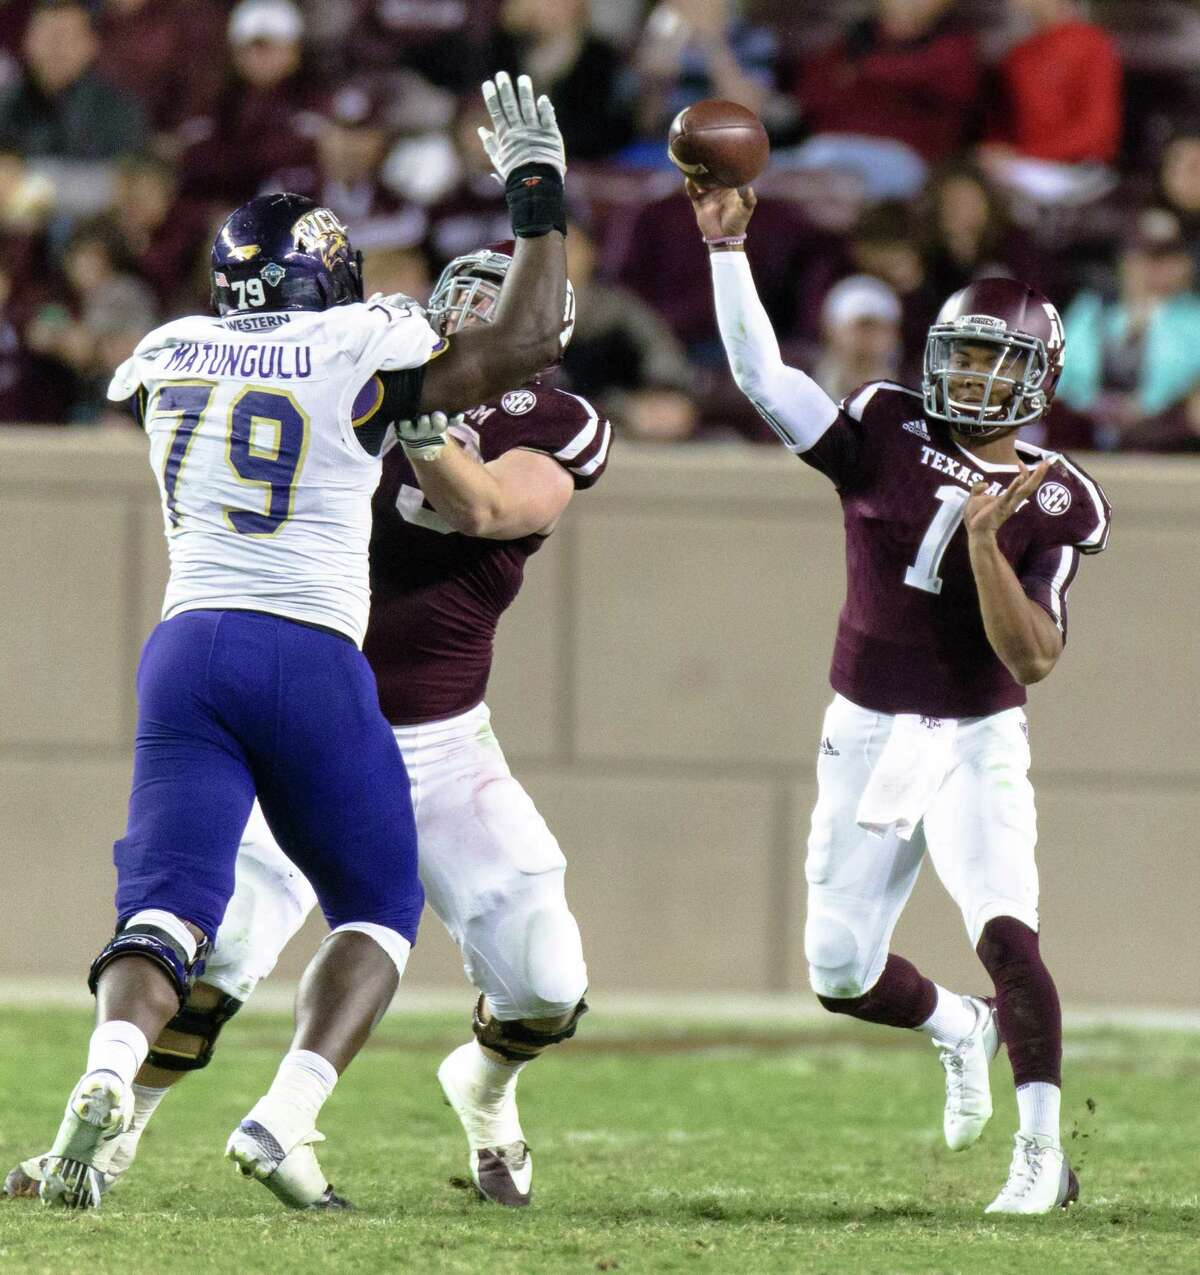 A&M wanted to see how Kyler Murray fared as more of a pocket passer than a scrambler against Western Carolina, and the results were mixed.